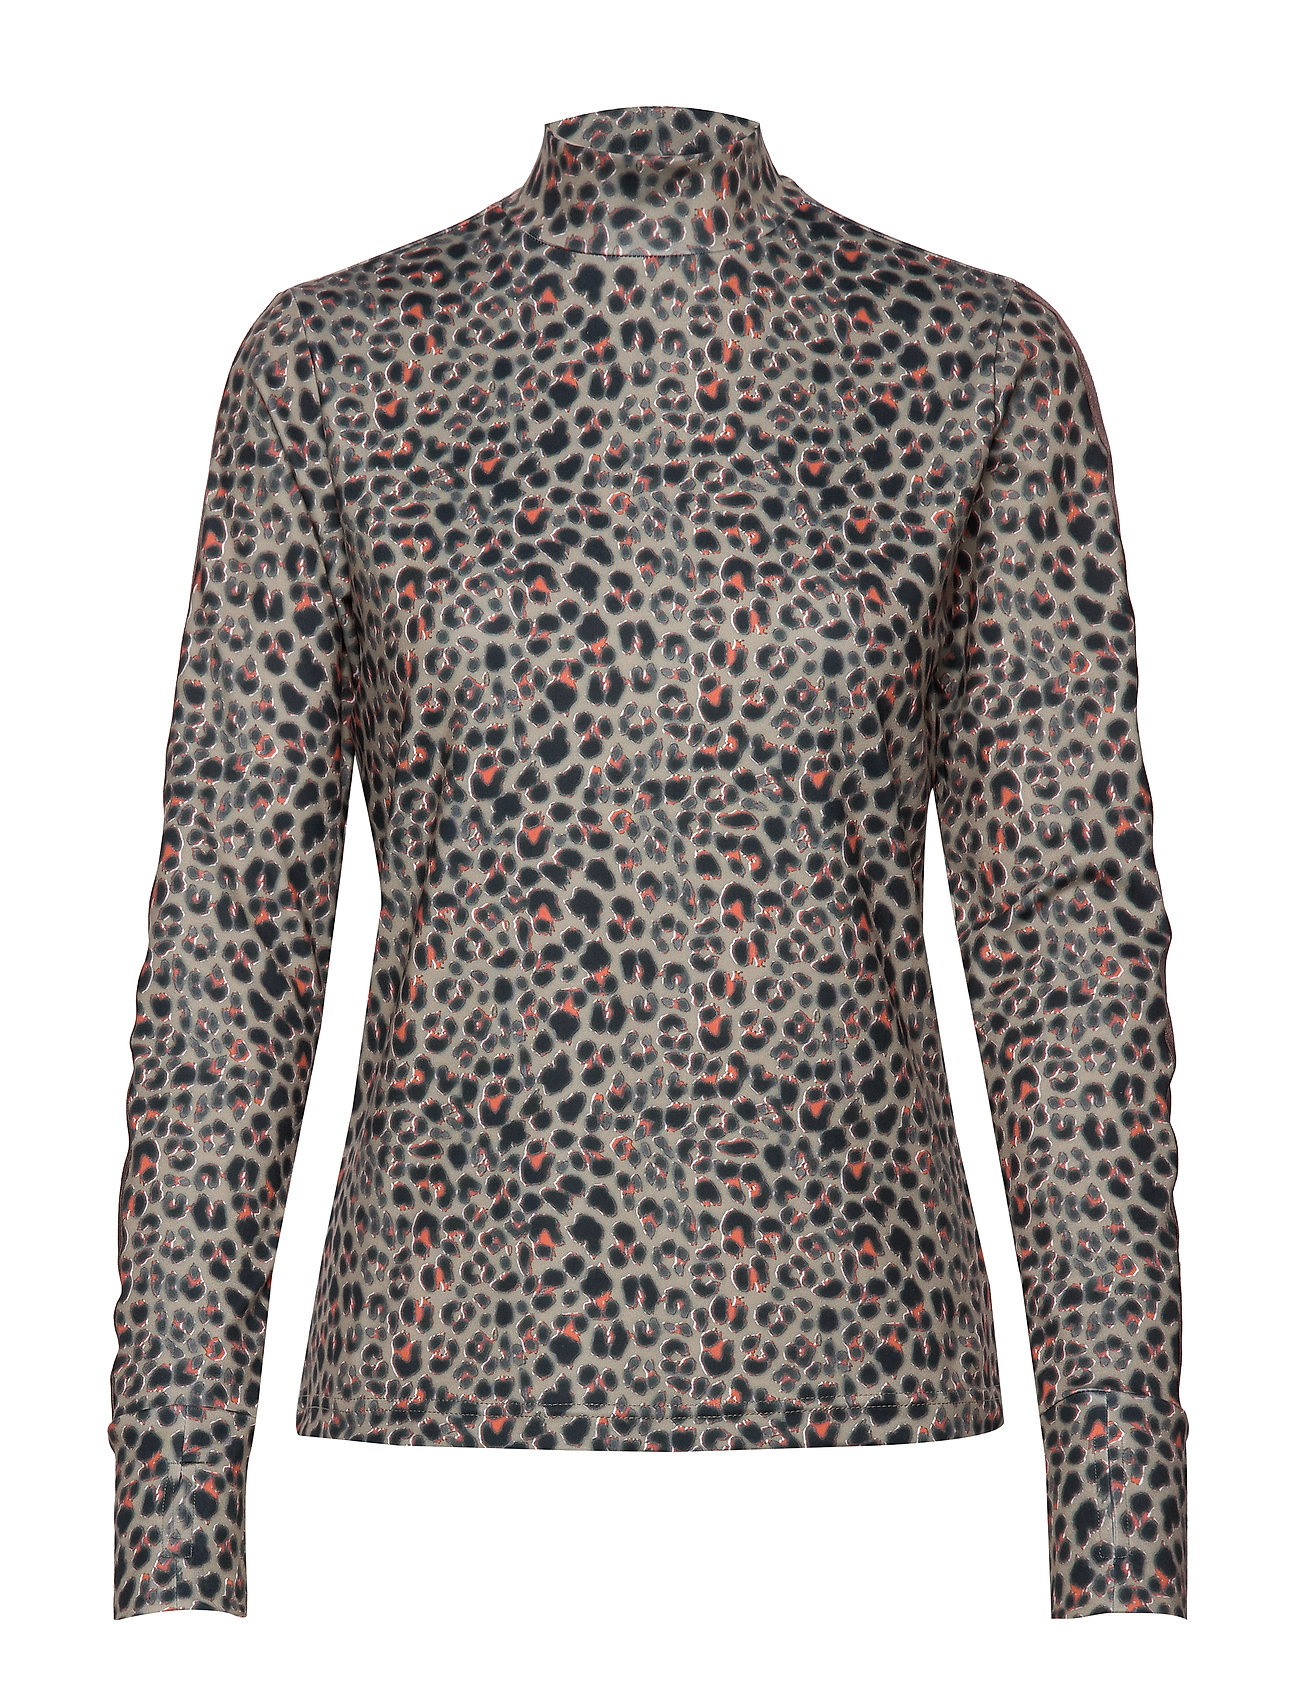 Daily Sports PRINTED LS MOCK NECK - ALMOND